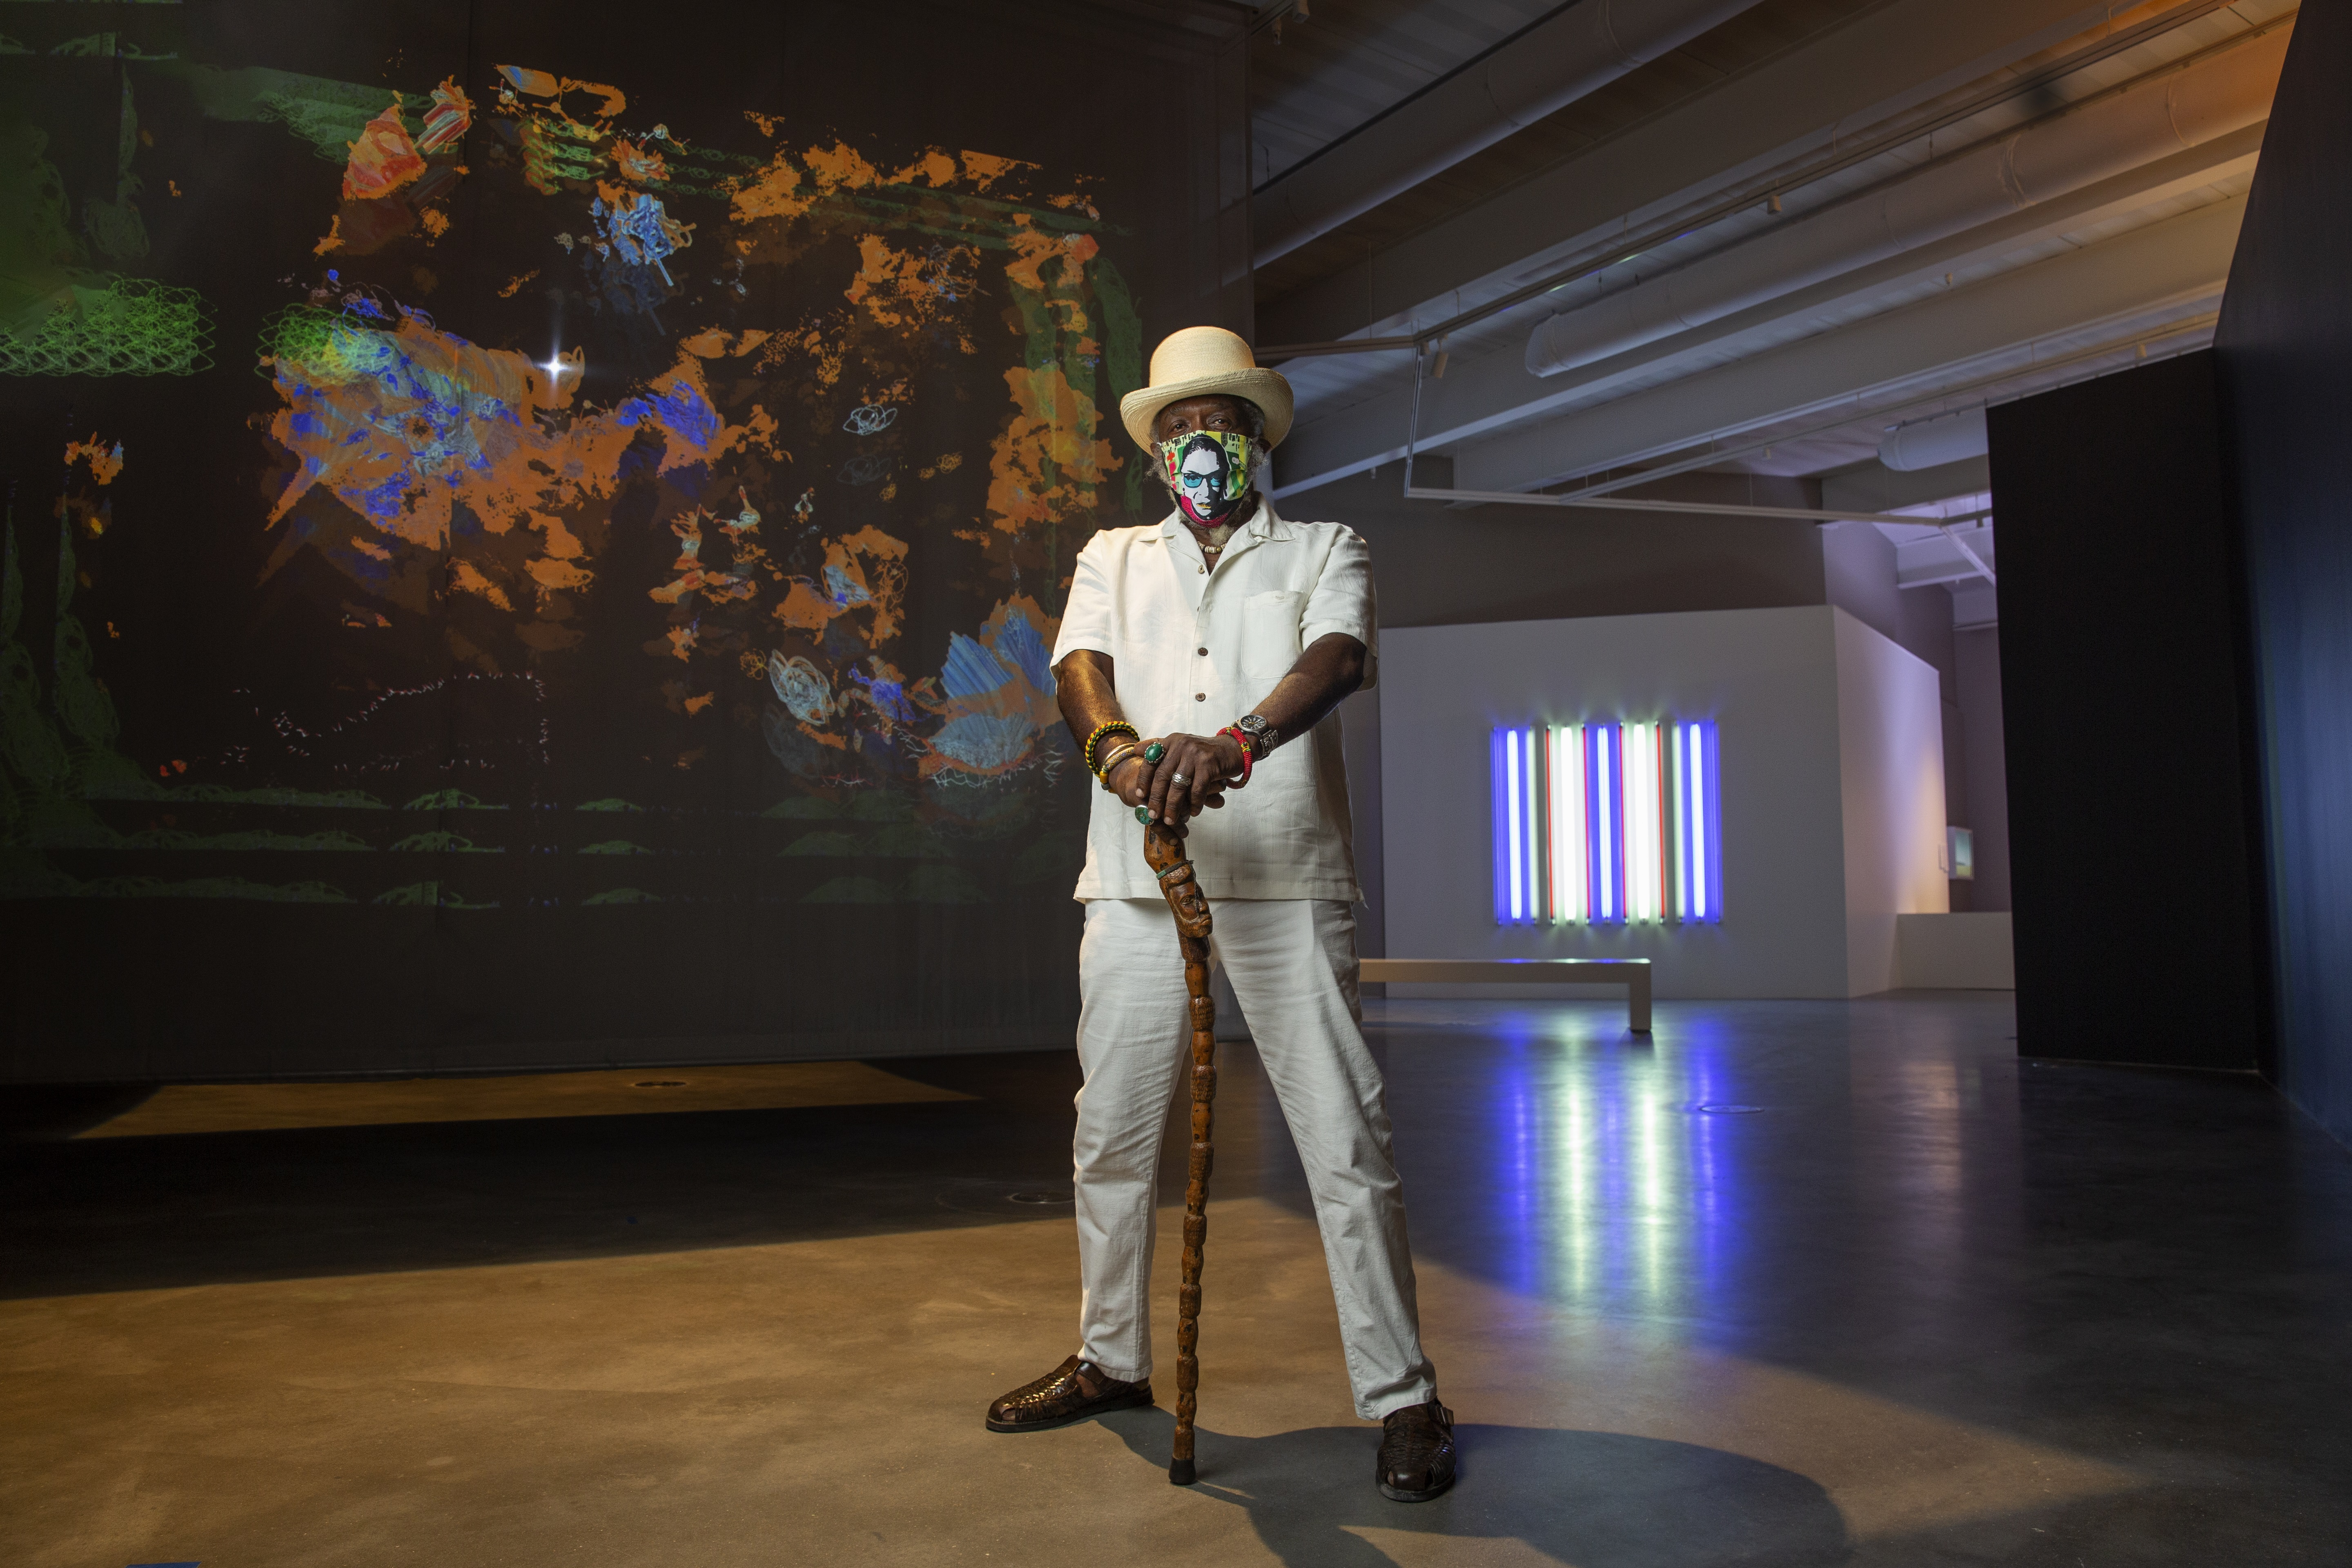 A masked figure poses in front of contemporary works of art in a gallery space